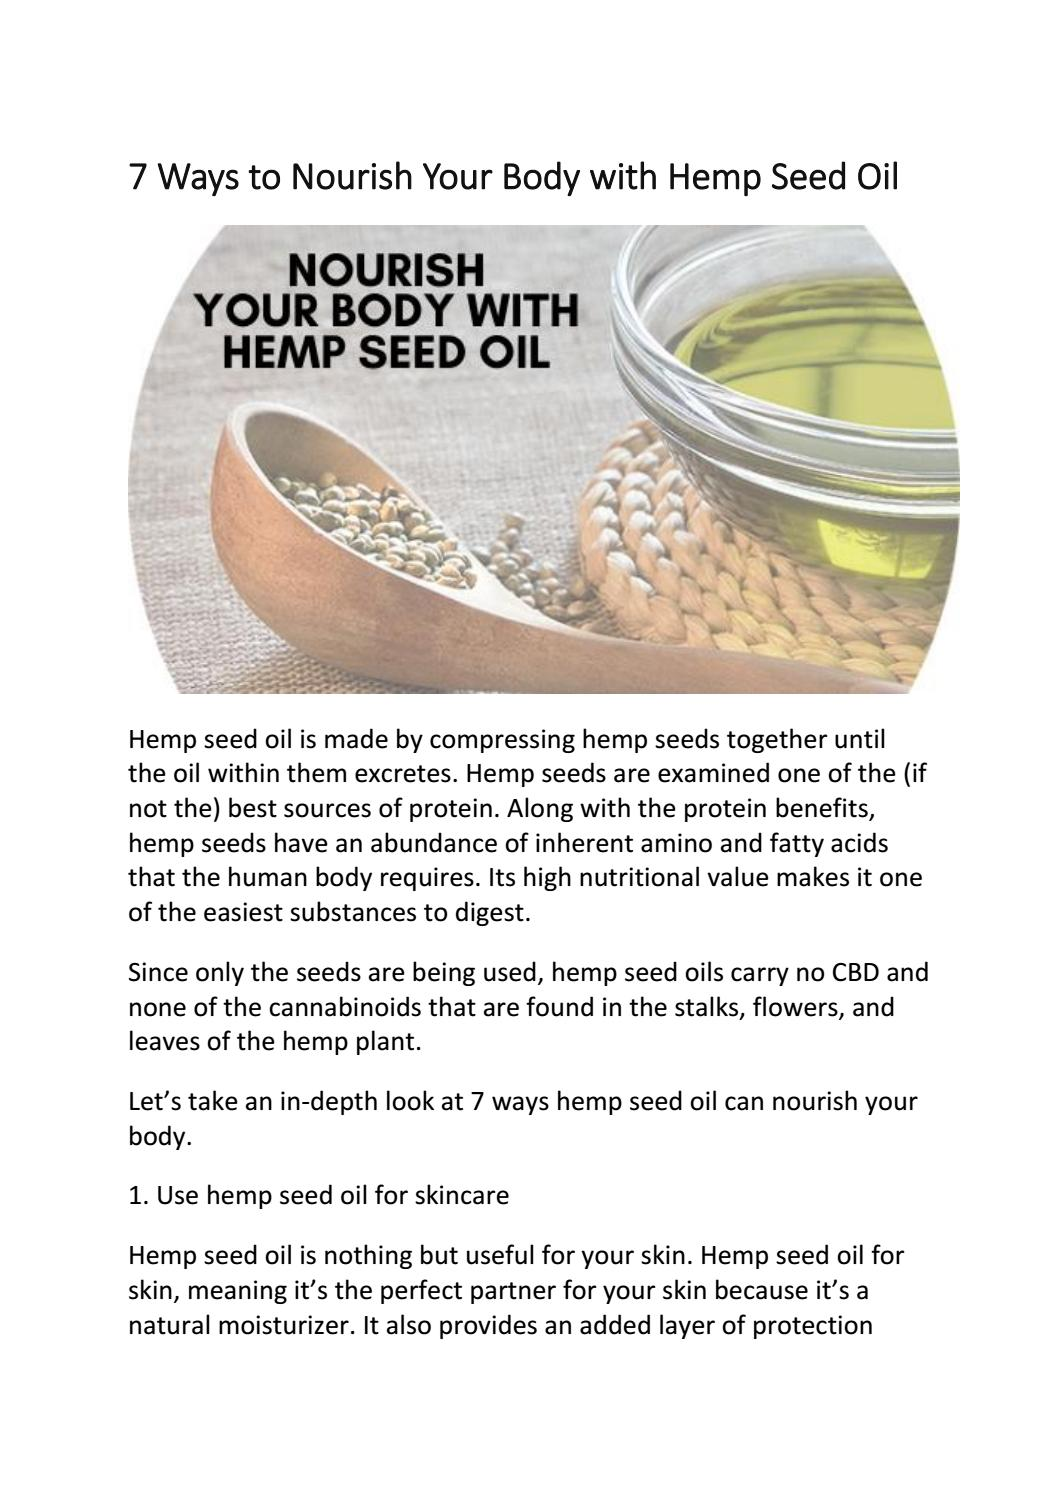 7 Ways To Nourish Your Body With Hemp Seed Oil By Cbdforskincare Issuu